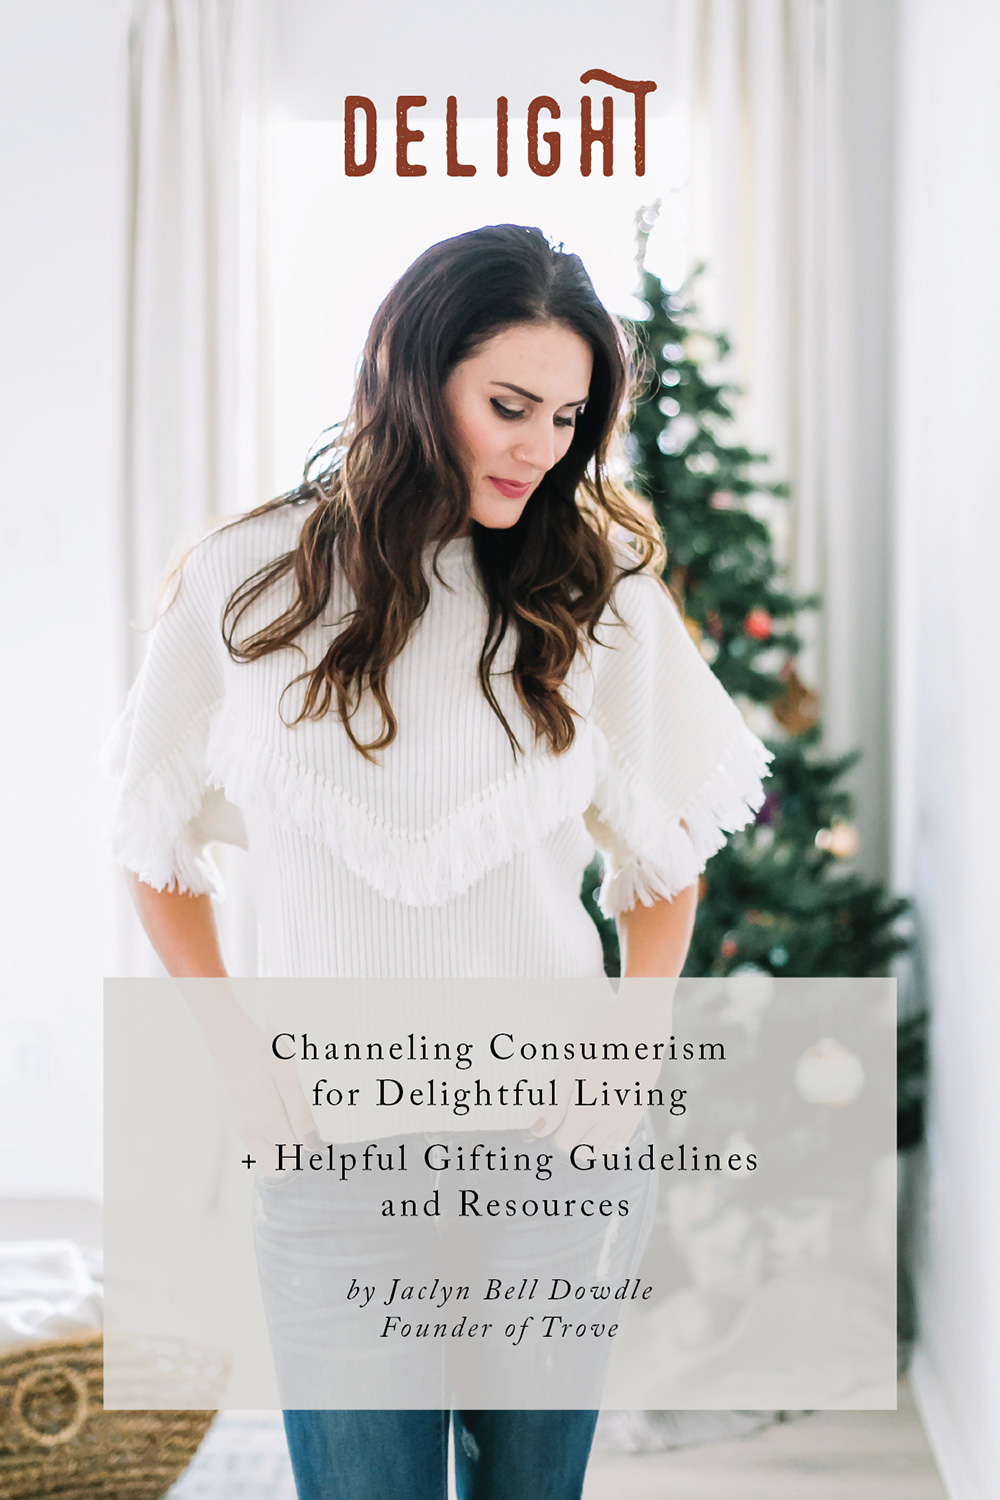 Channeling Consumerism for Delightful Living + Helpful Gifting Guidelines and Resources by Jaclyn Dowdle of Trove